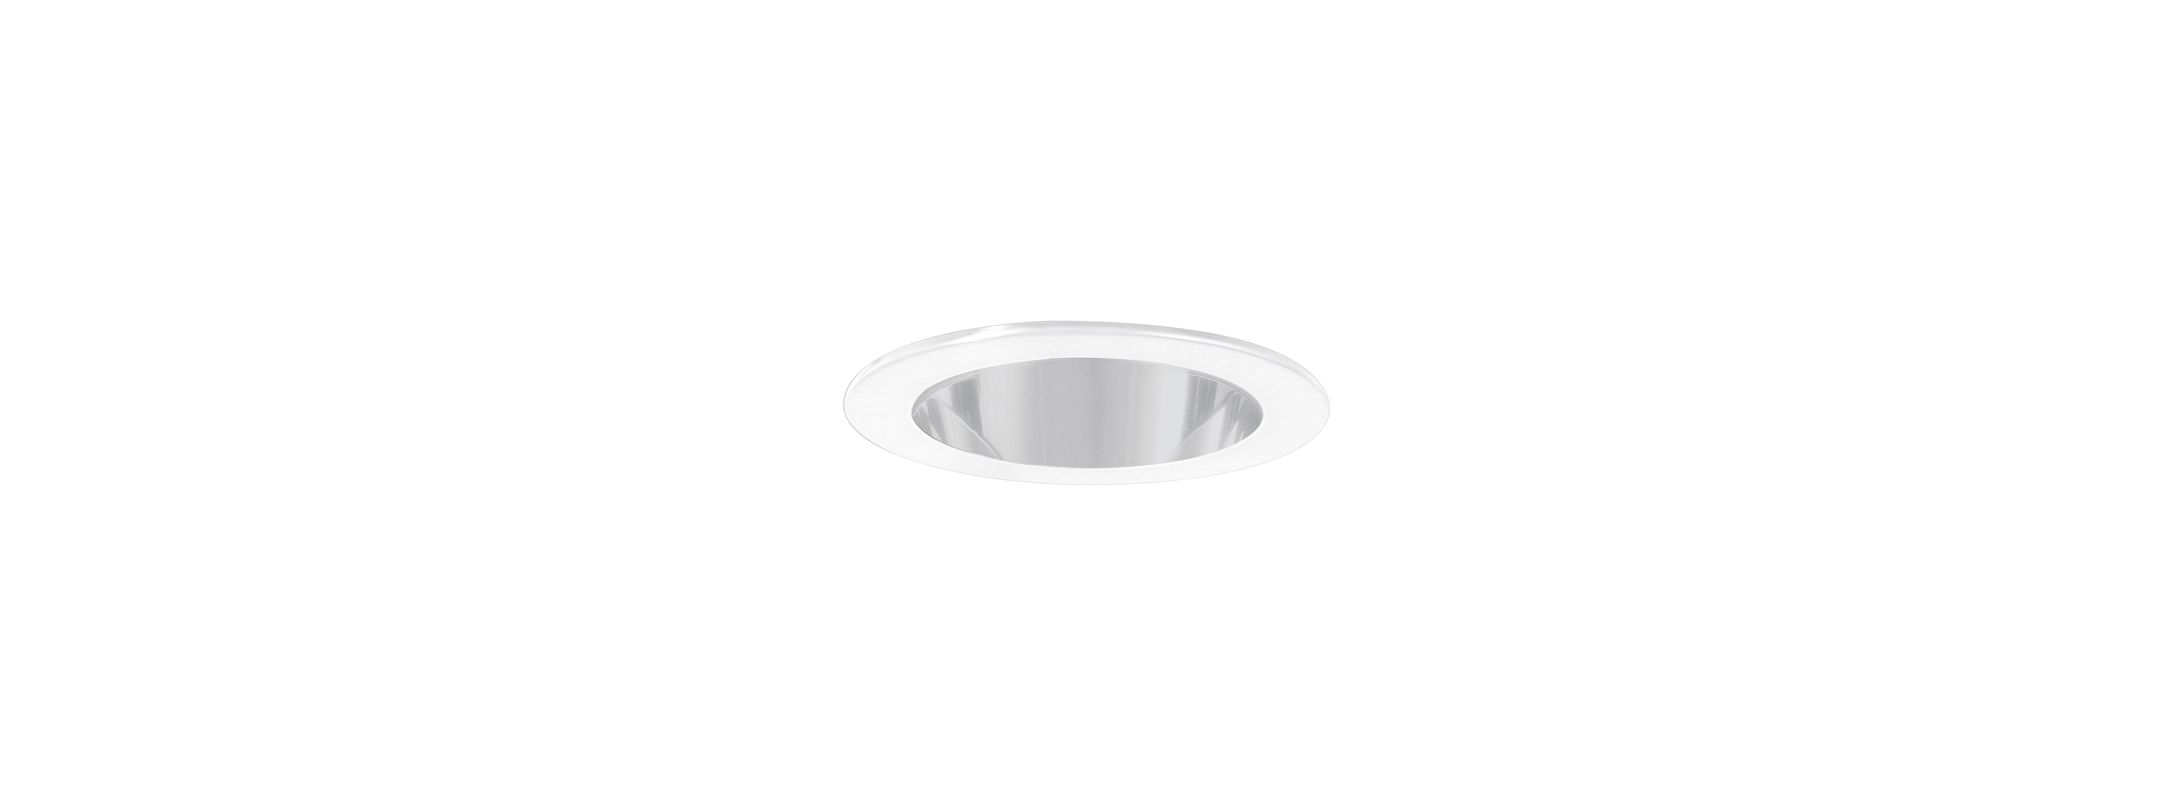 "Elco EL9111 4"" Shower Trim with Clear Lens and Reflector White"